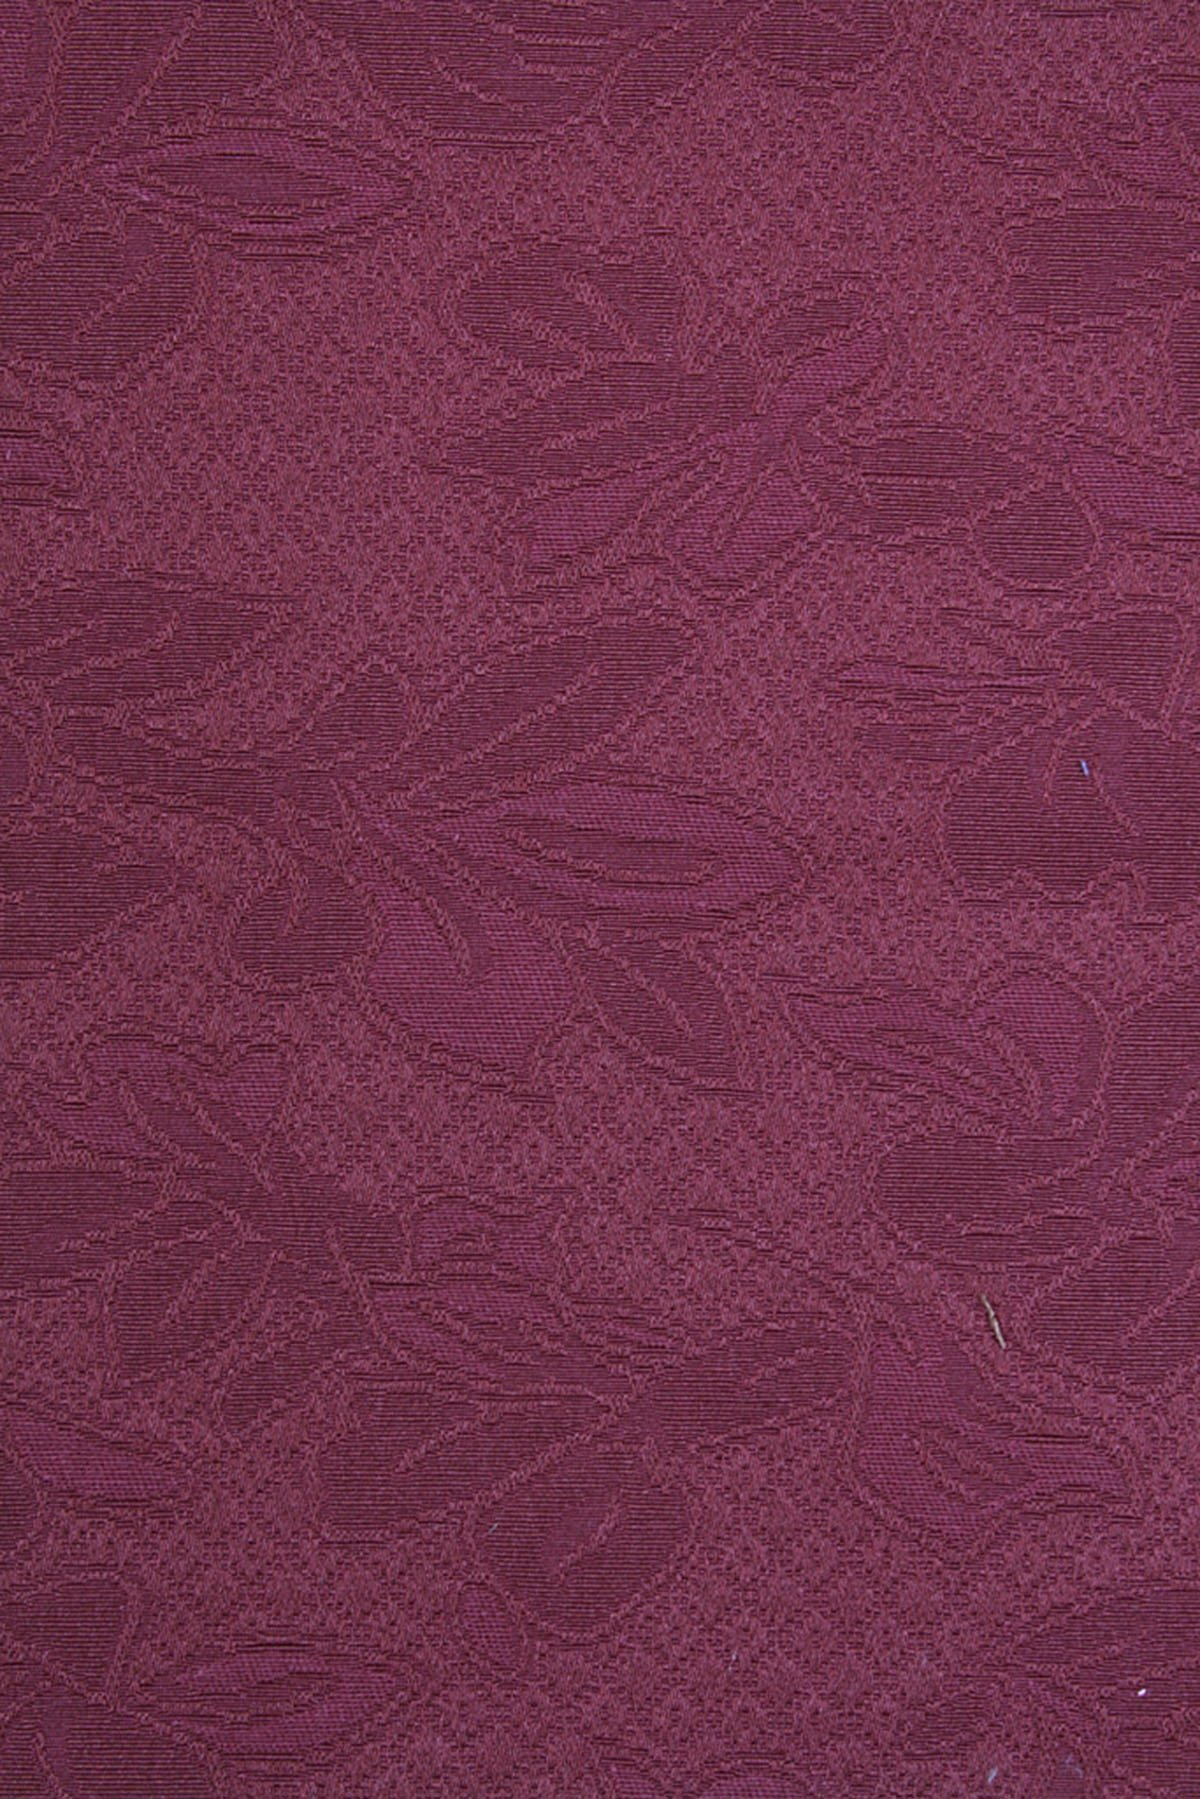 Healthcare Interiors Sea Spice Unquilted Twin Bed Spread (Rasberry) by Healthcare Interiors (Image #1)